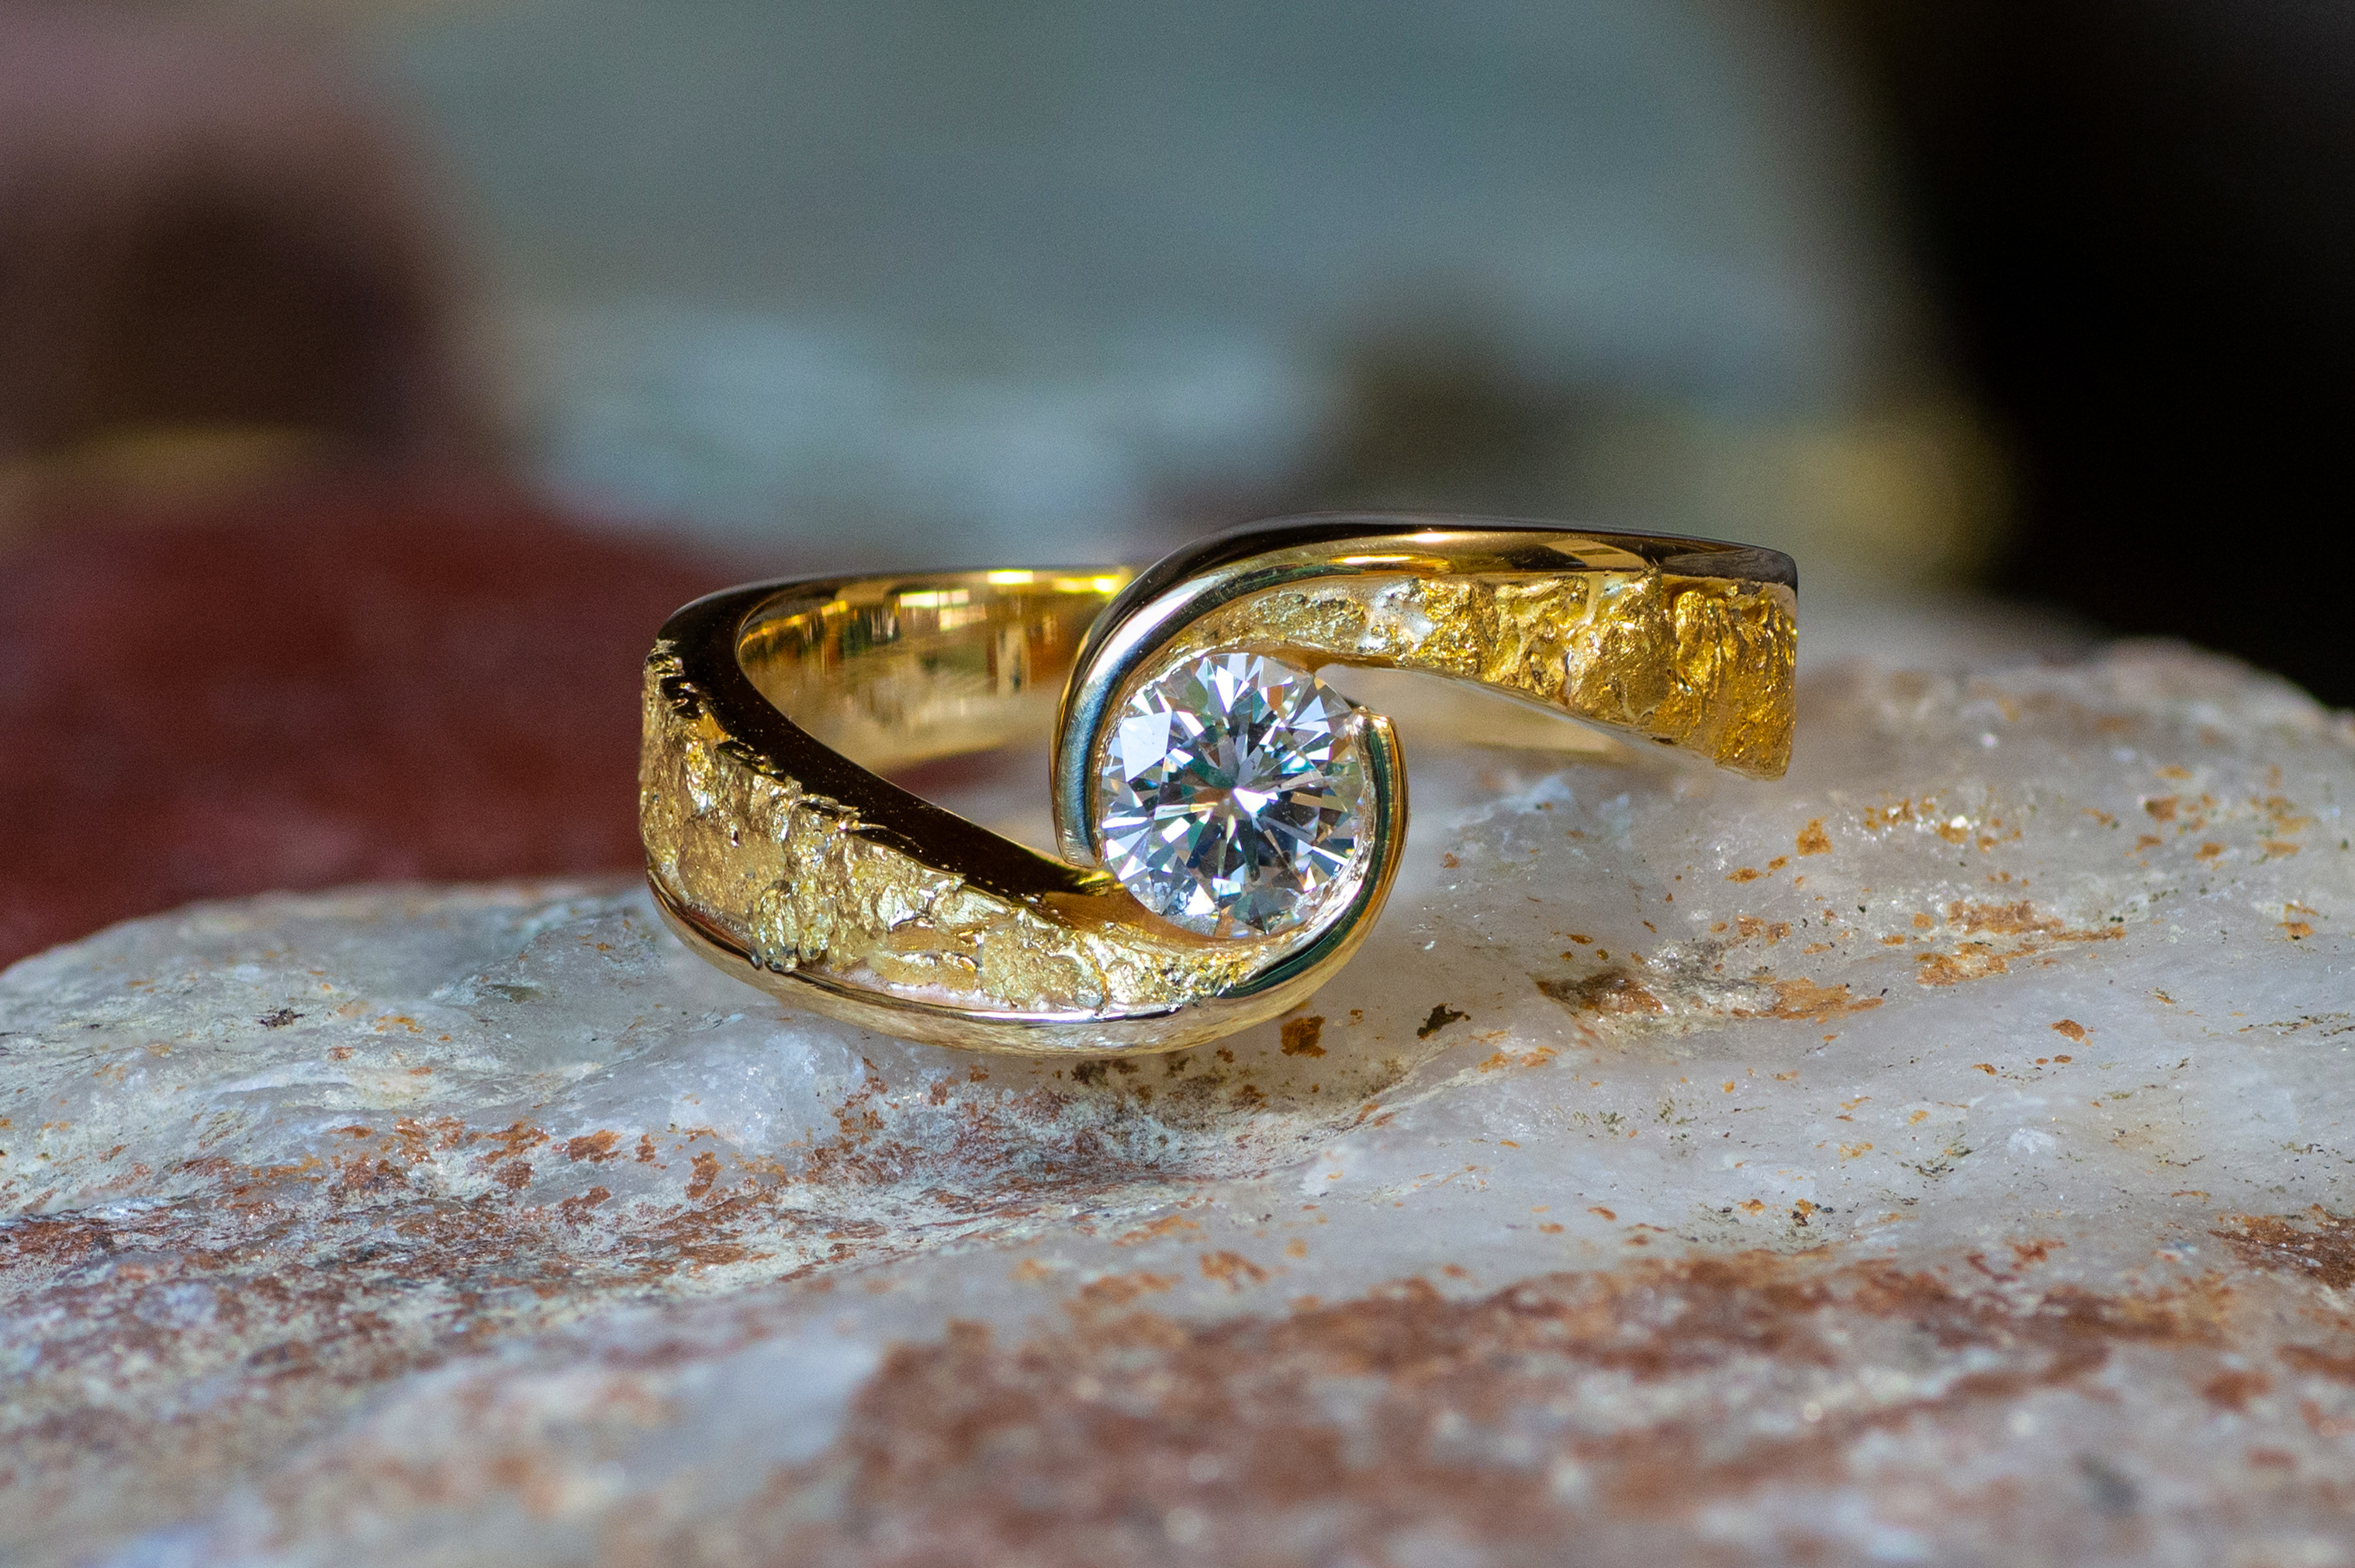 Alaskan Gold Nuggets and Diamond in 14kt Yellow Gold wedding ring.